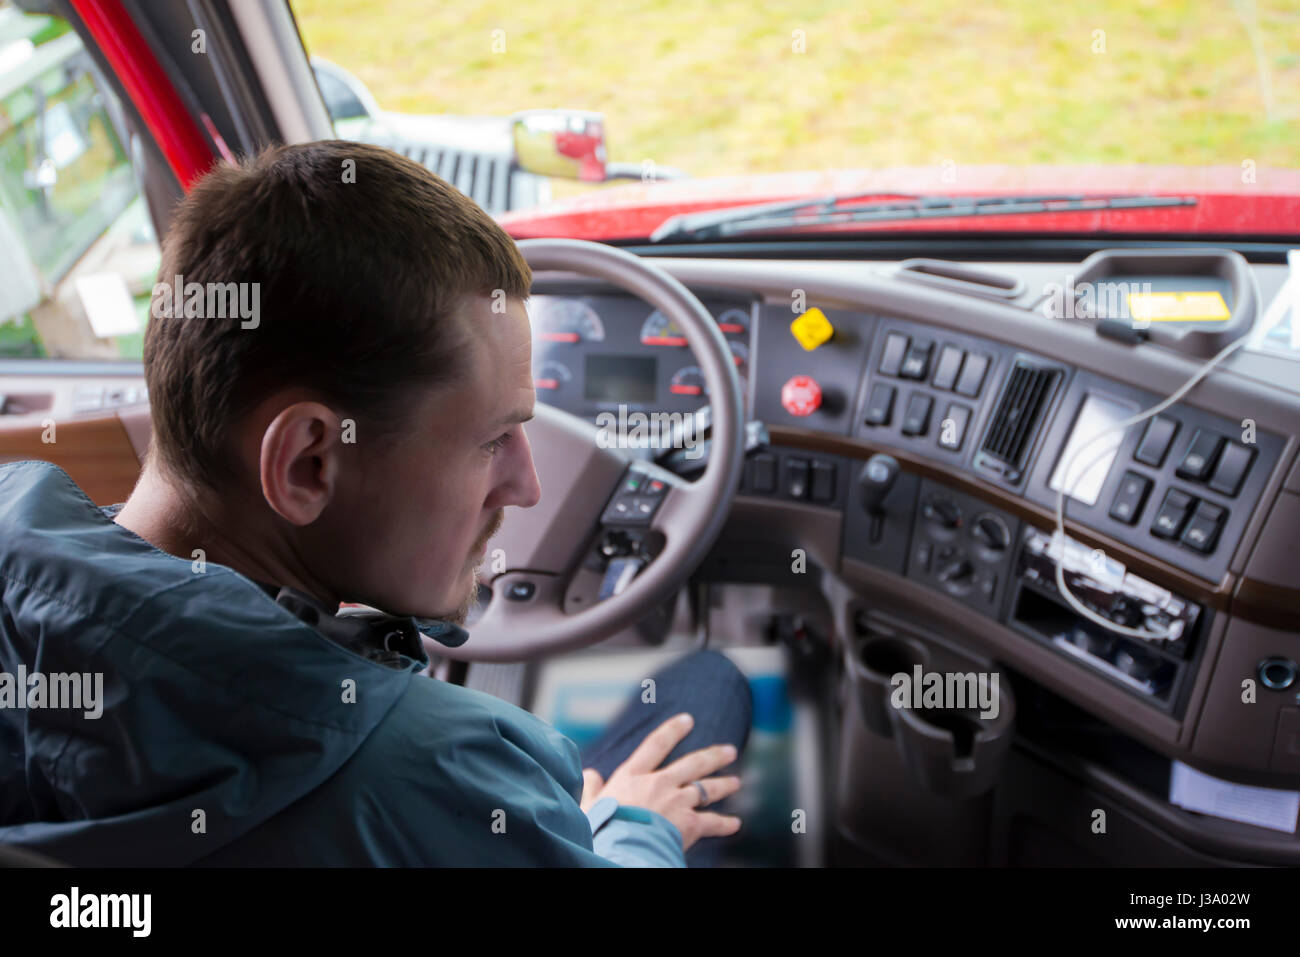 The truck driver sitting in the cab of modern comfort and ergonomic semi truck behind the wheel and interior dashboard - Stock Image